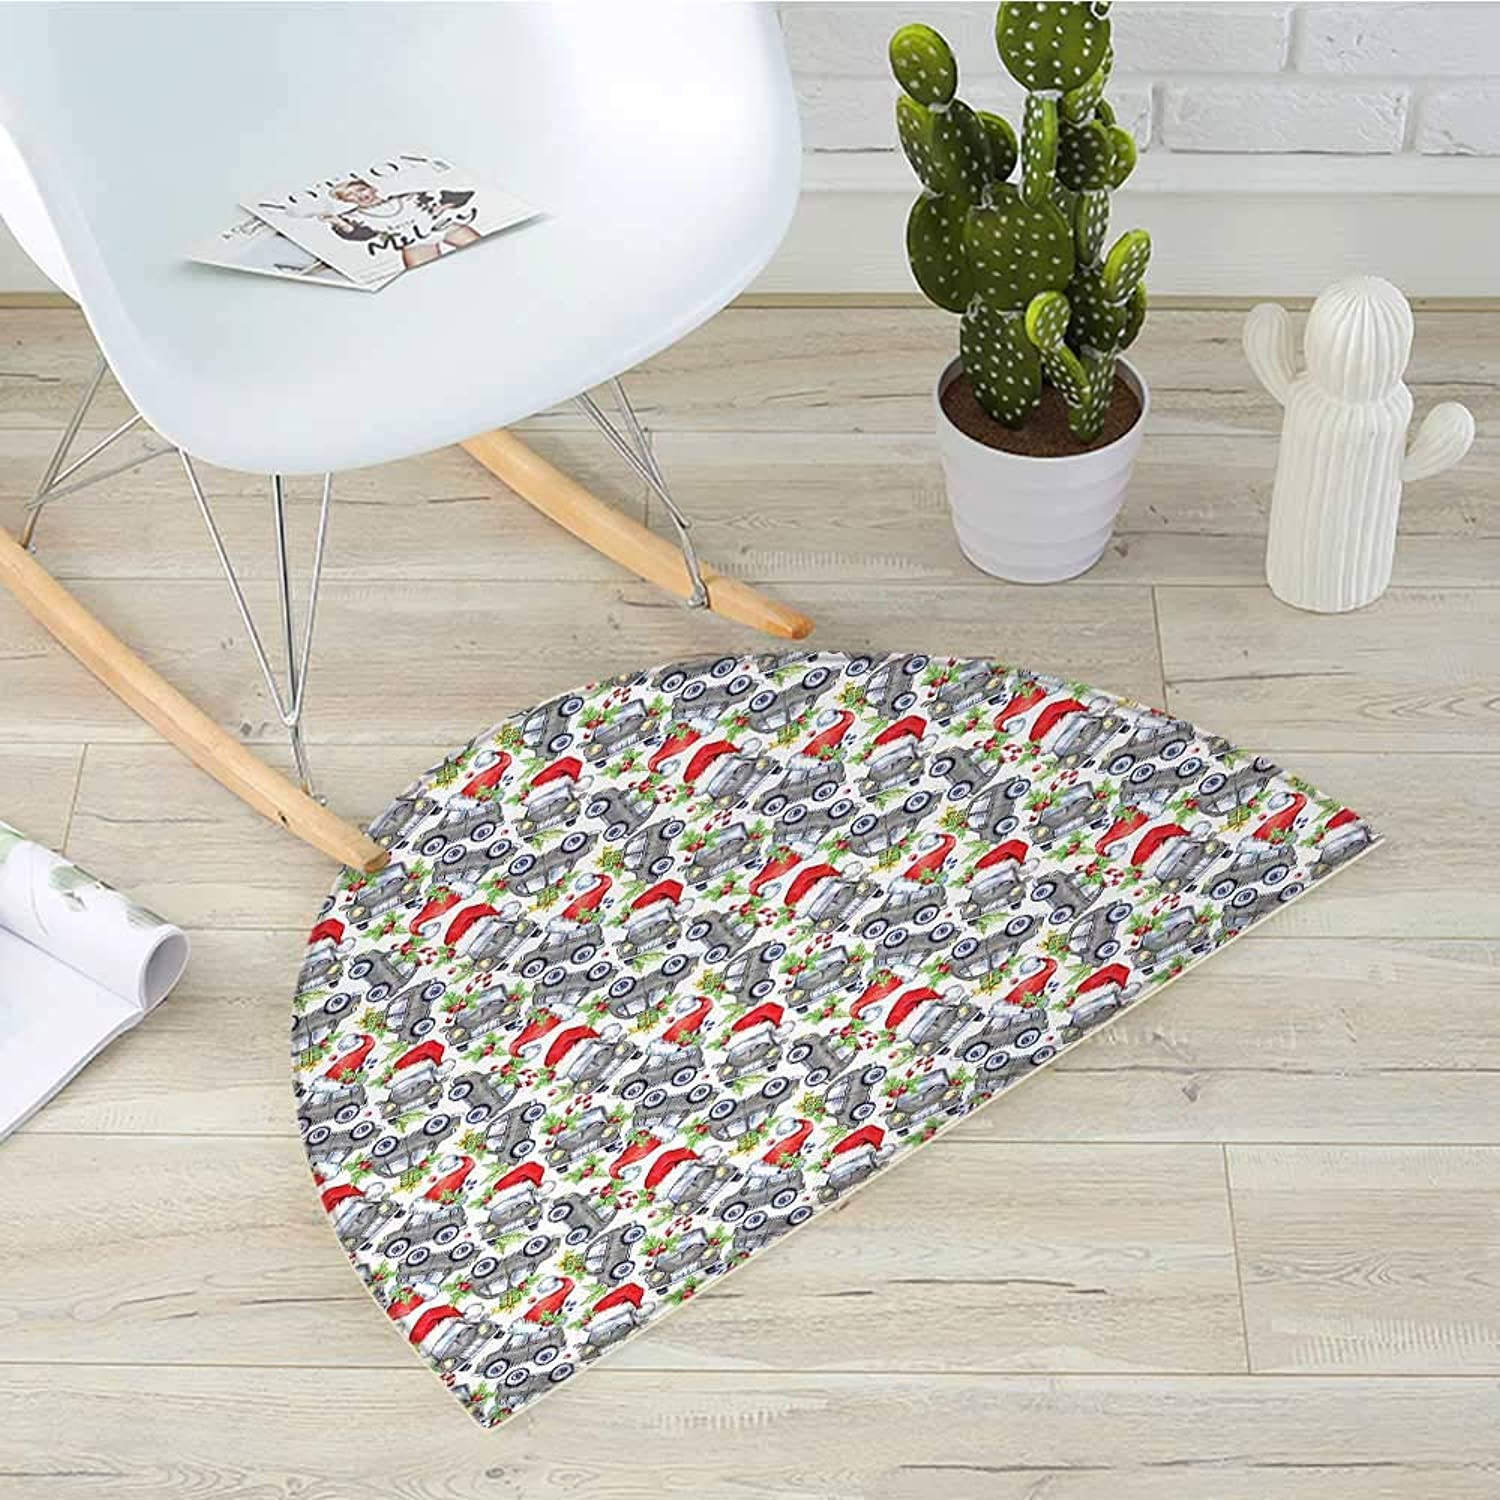 Cars Semicircle Doormat Christmas Themed Hand Drawn Cars with Santa Hats and Presents on Winter Holiday Halfmoon doormats H 39.3  xD 59  Lime Green Grey